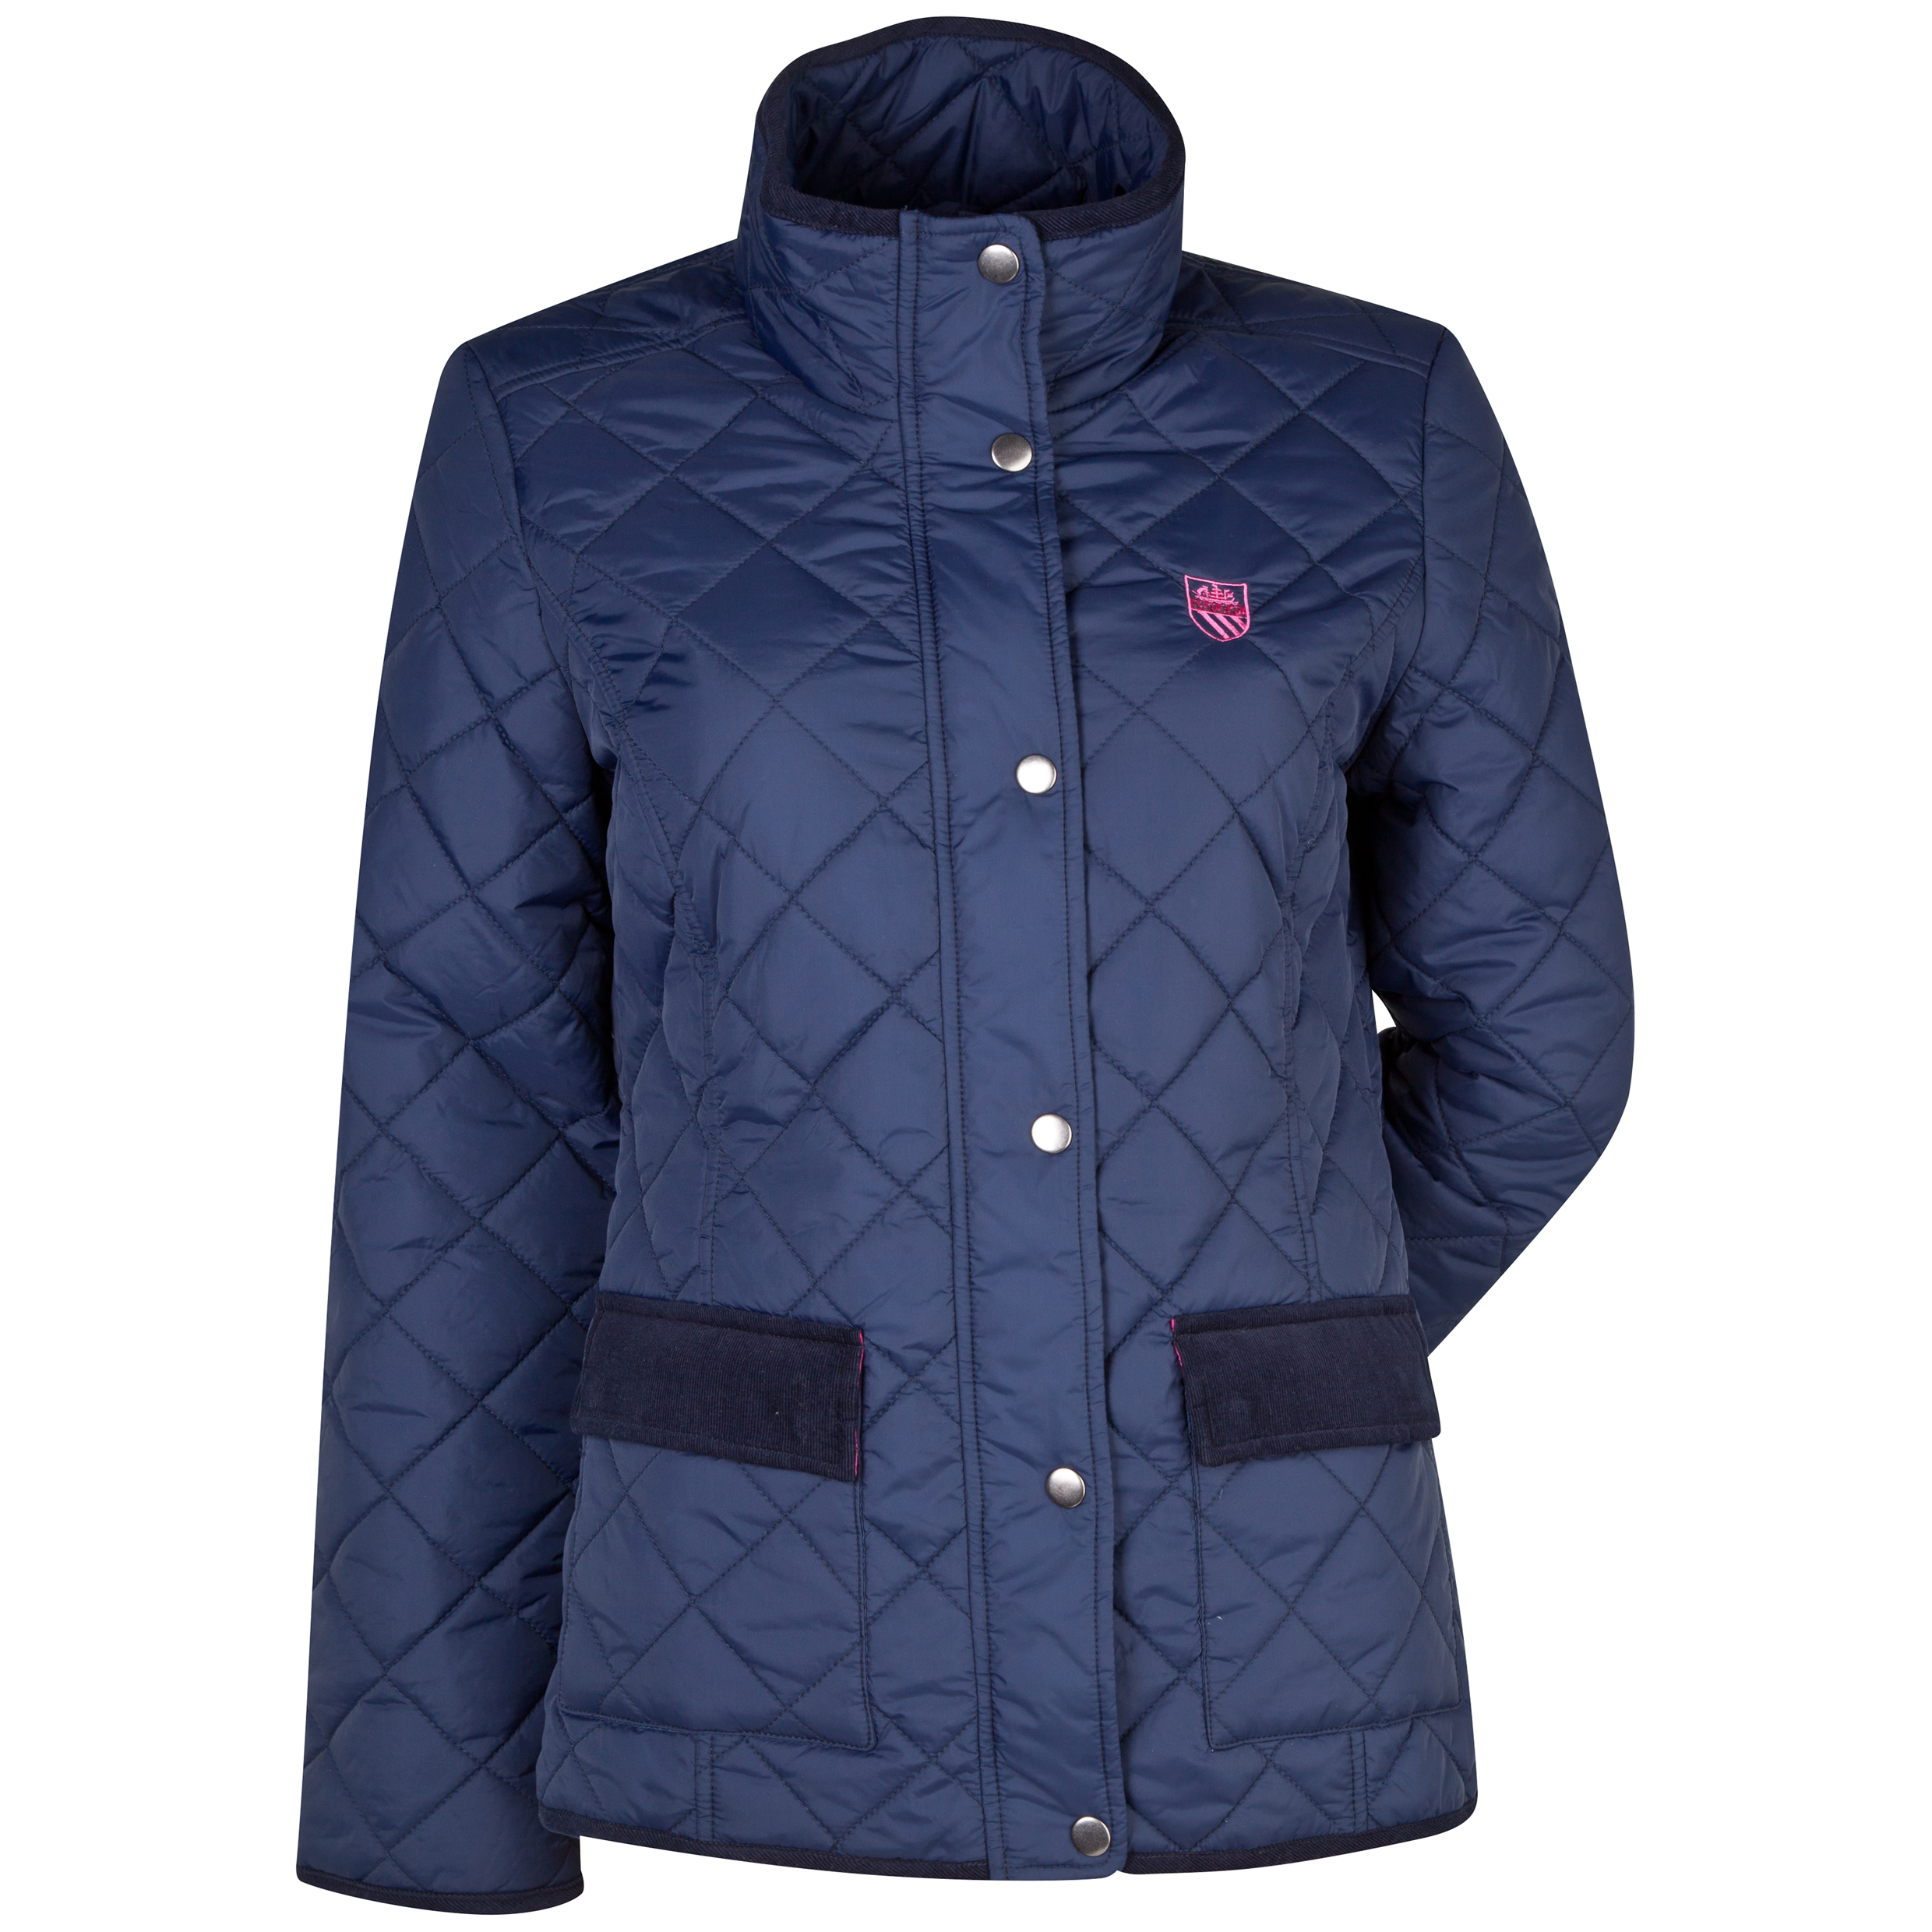 Manchester City Ava Jacket - Womens Navy